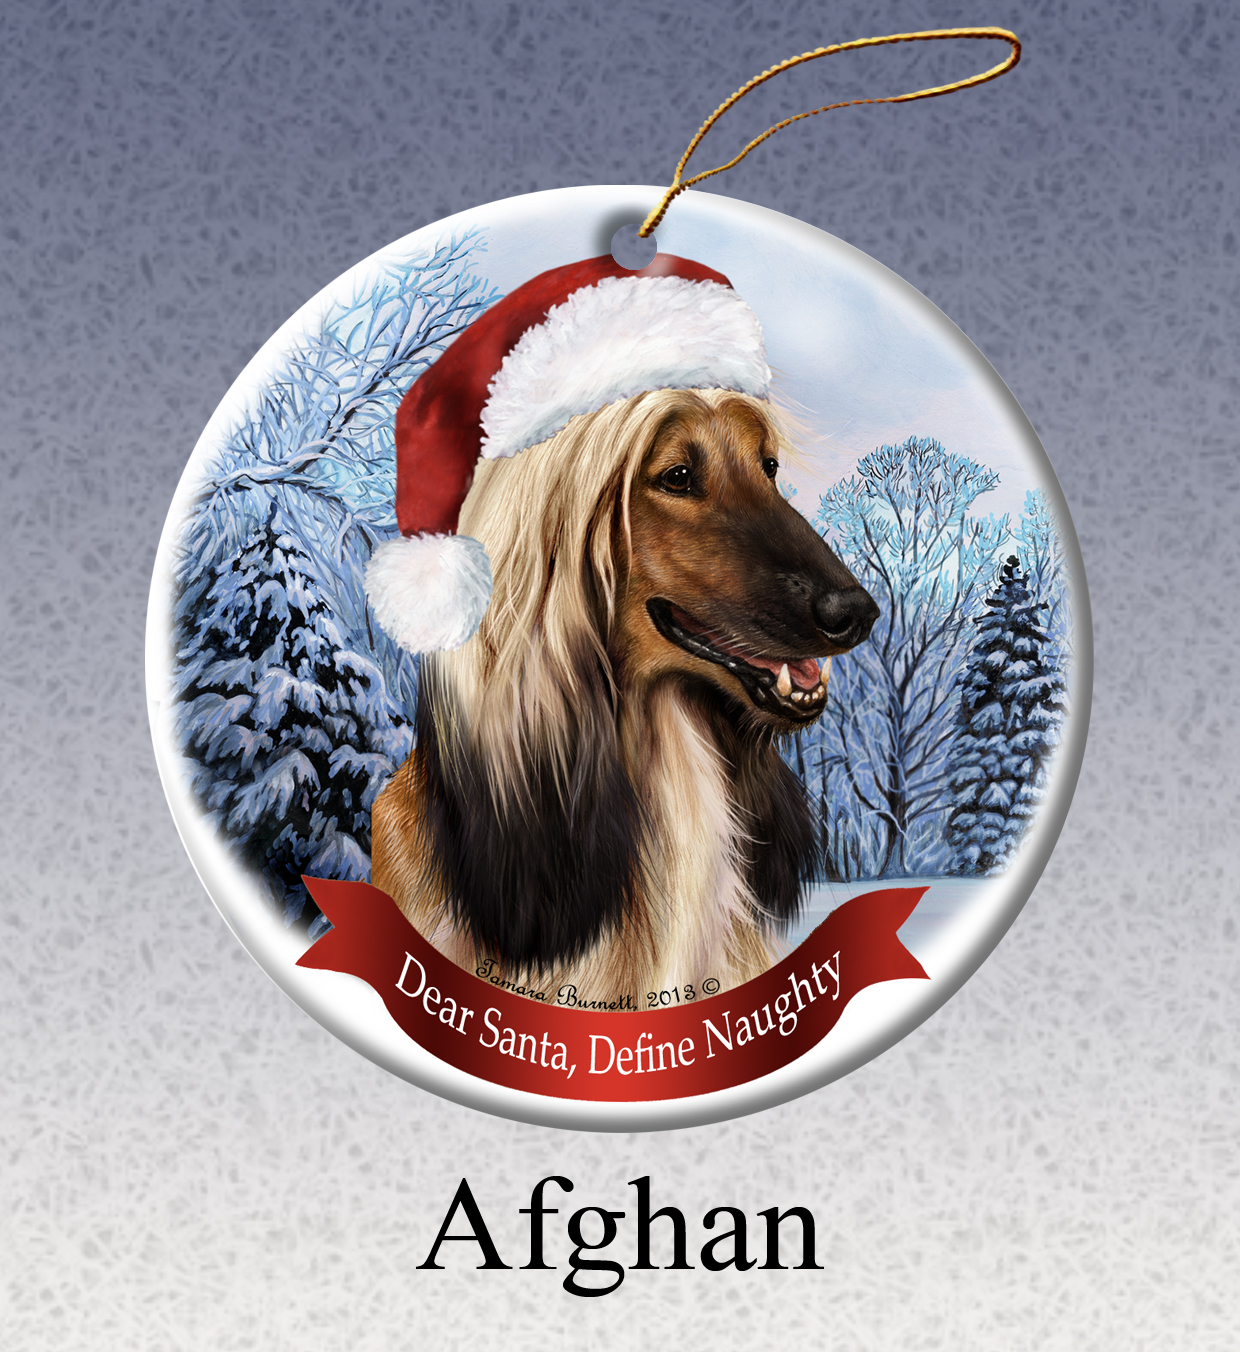 Afghan - Howliday Ornament Image